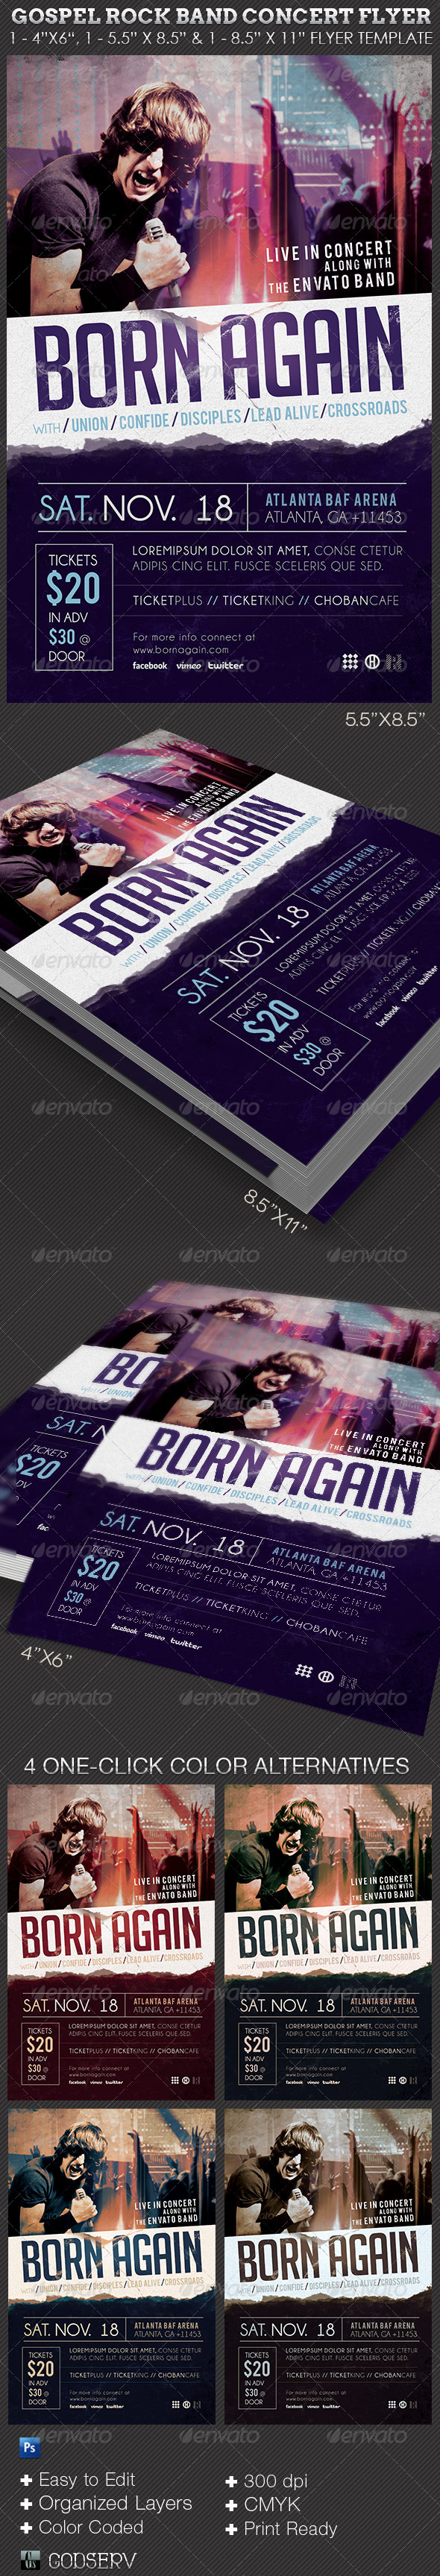 Gospel Rock Band Concert Flyer Template - Church Flyers